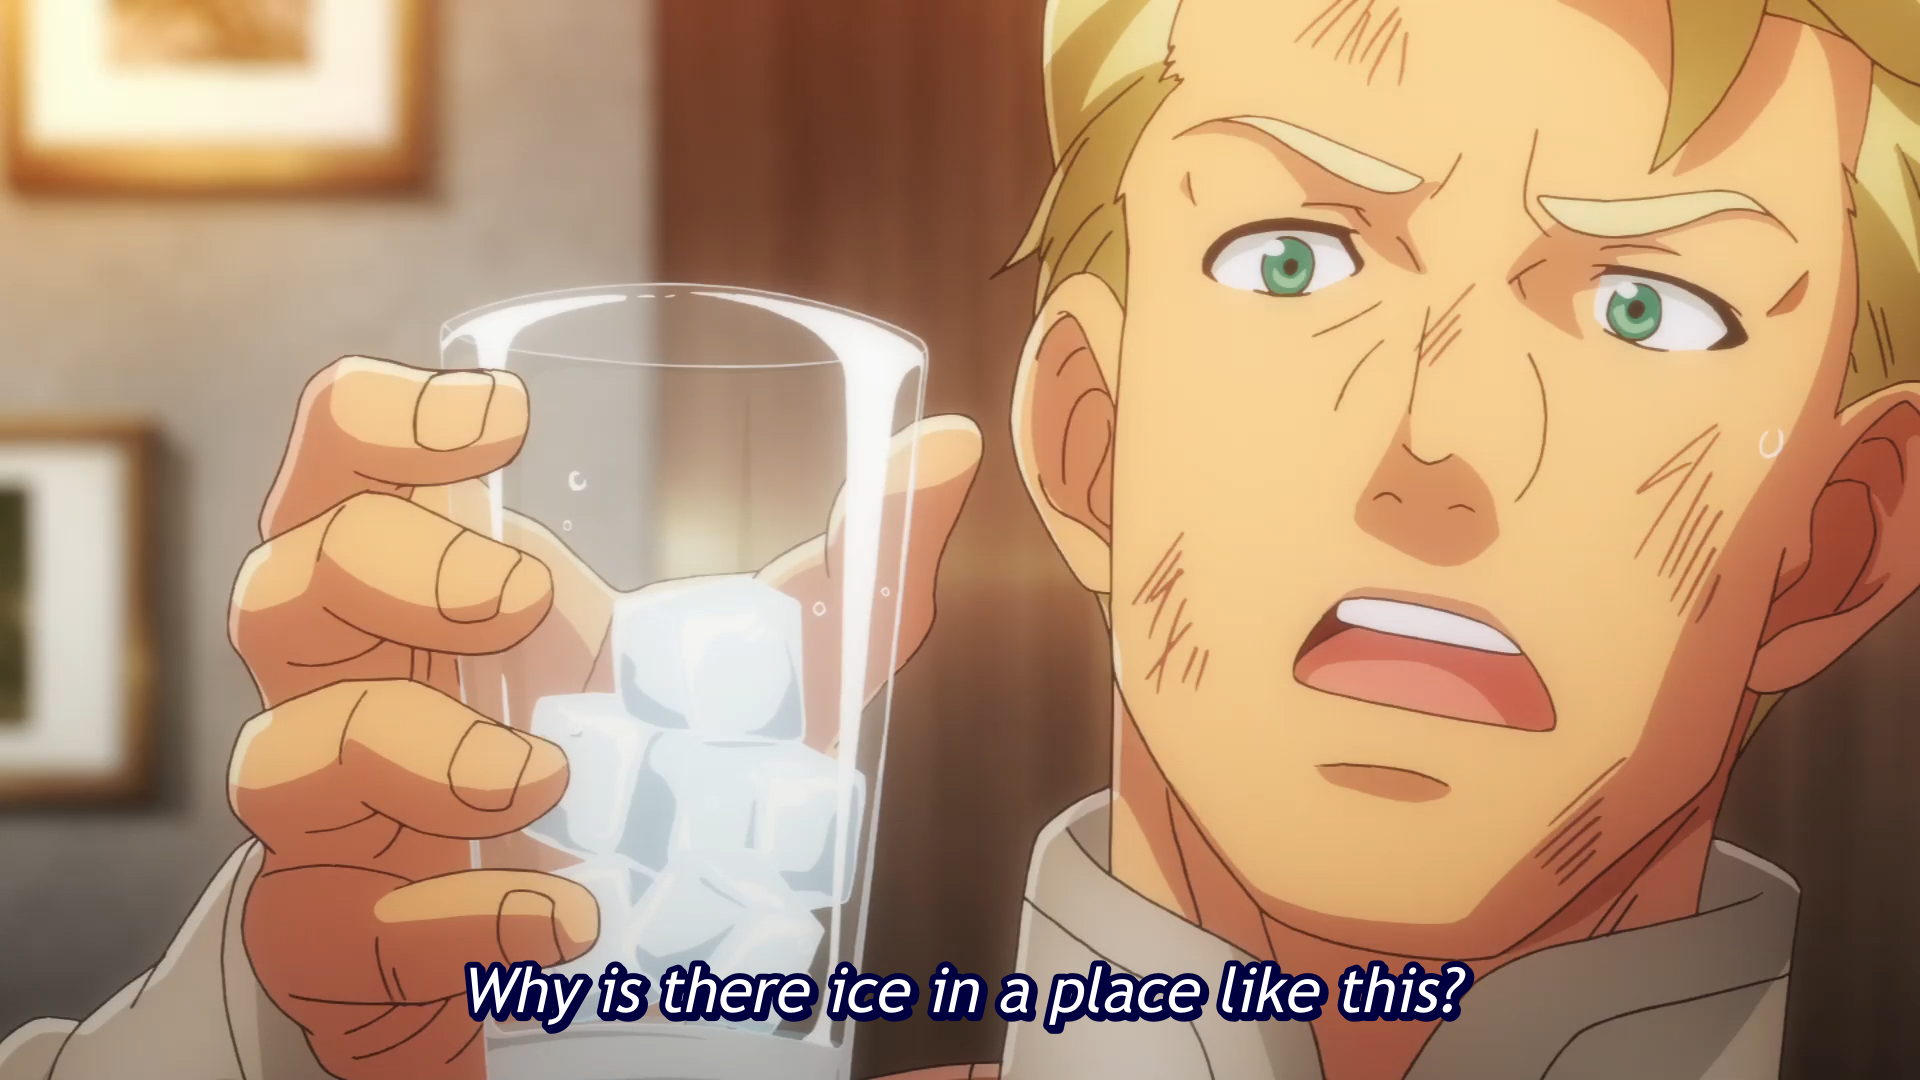 Heinrich Seeleman is astounded by a glass of ice water in a scene from the Restaurant to Another World TV anime.